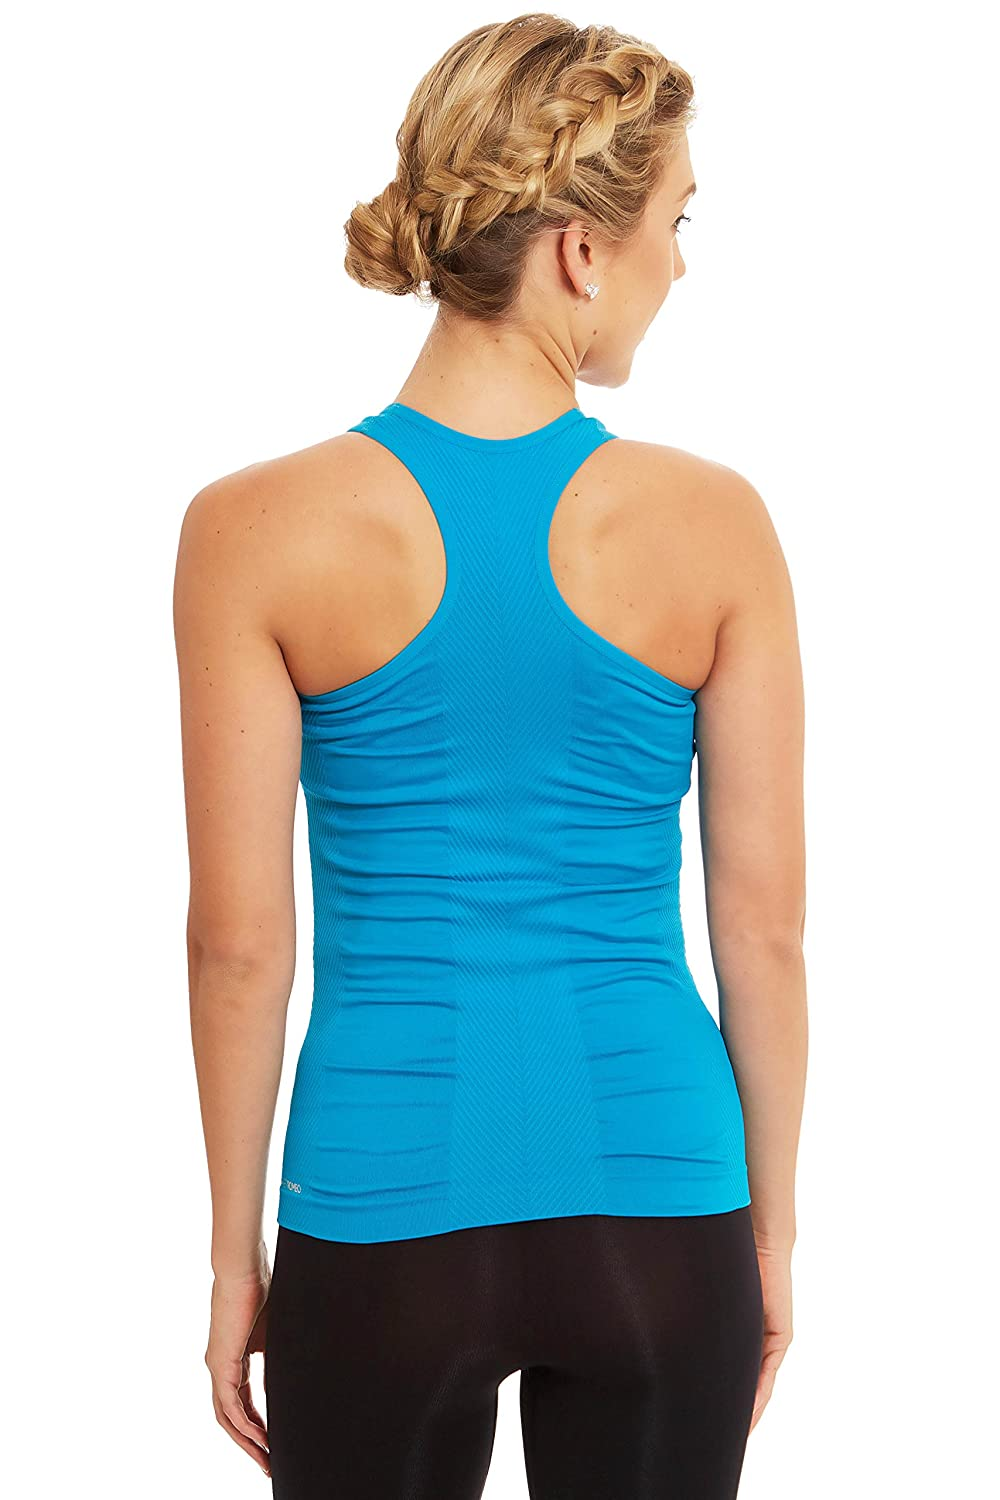 Sweet Romeo Active Womens Seamless Compression Tank Top Neon Azure